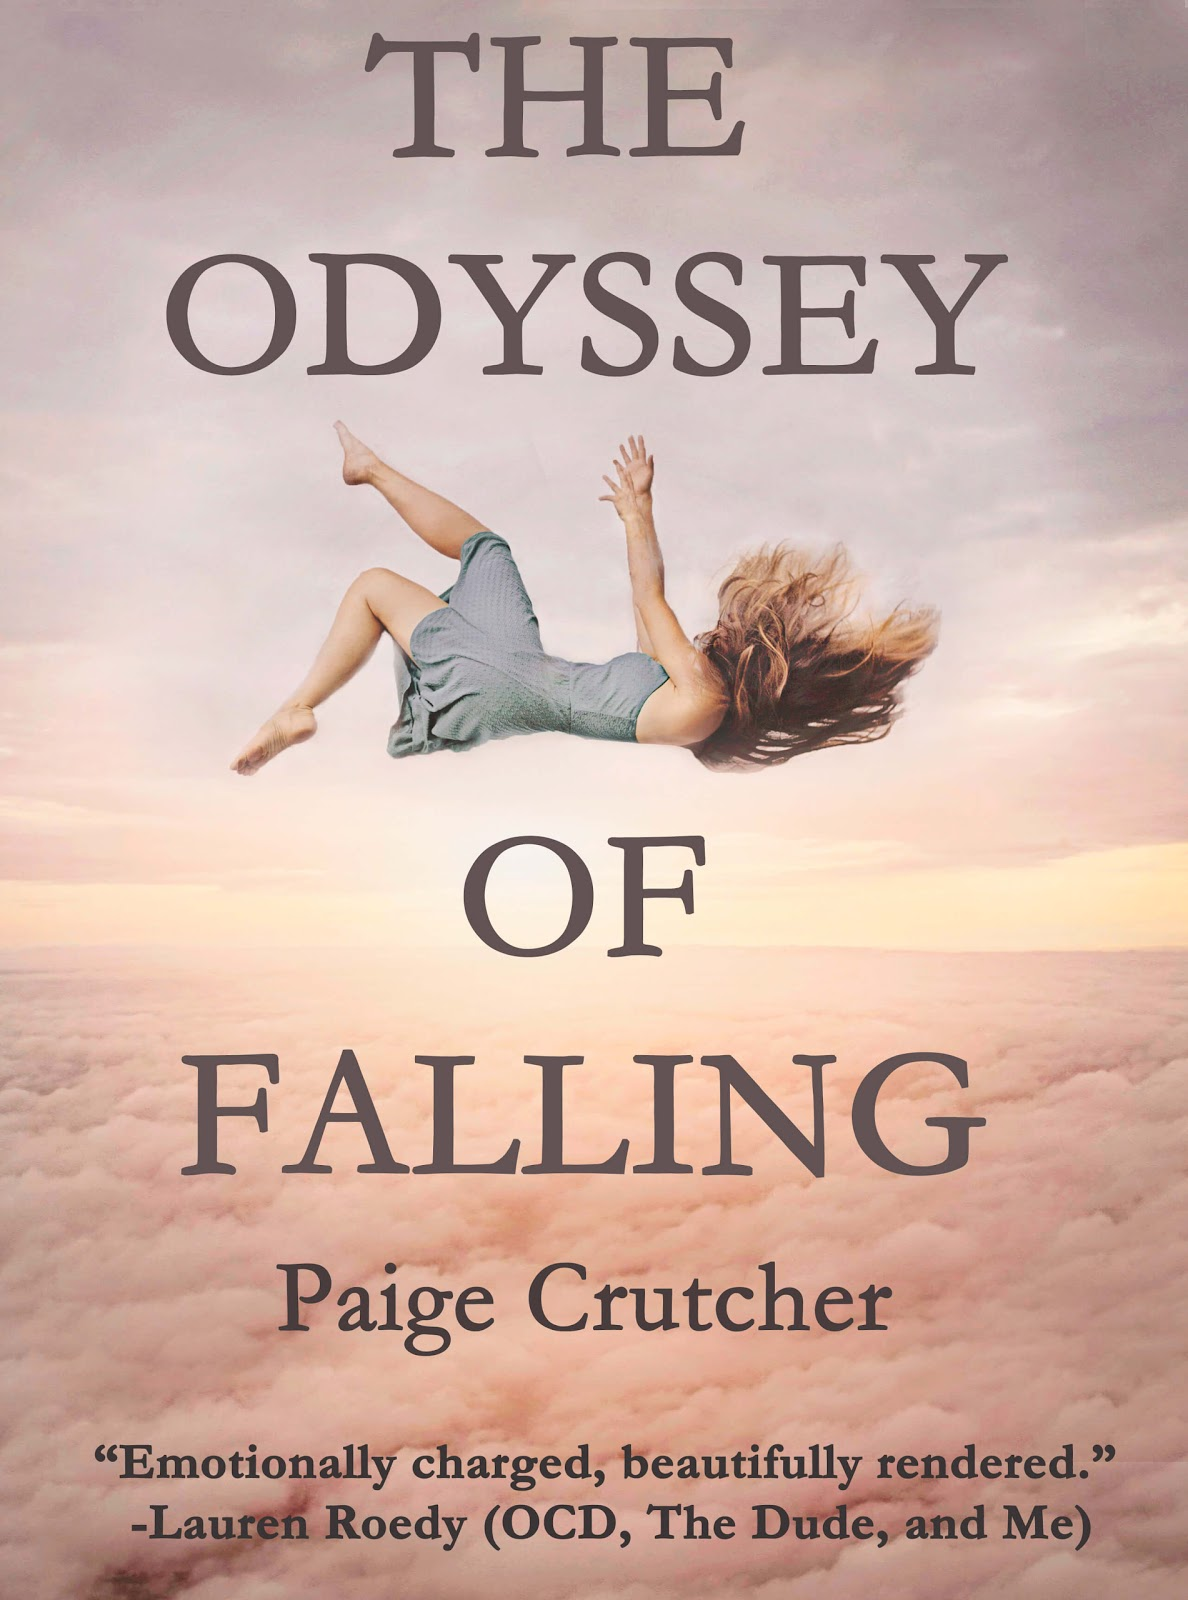 The Odyssey Of Falling (Paige Crutcher)